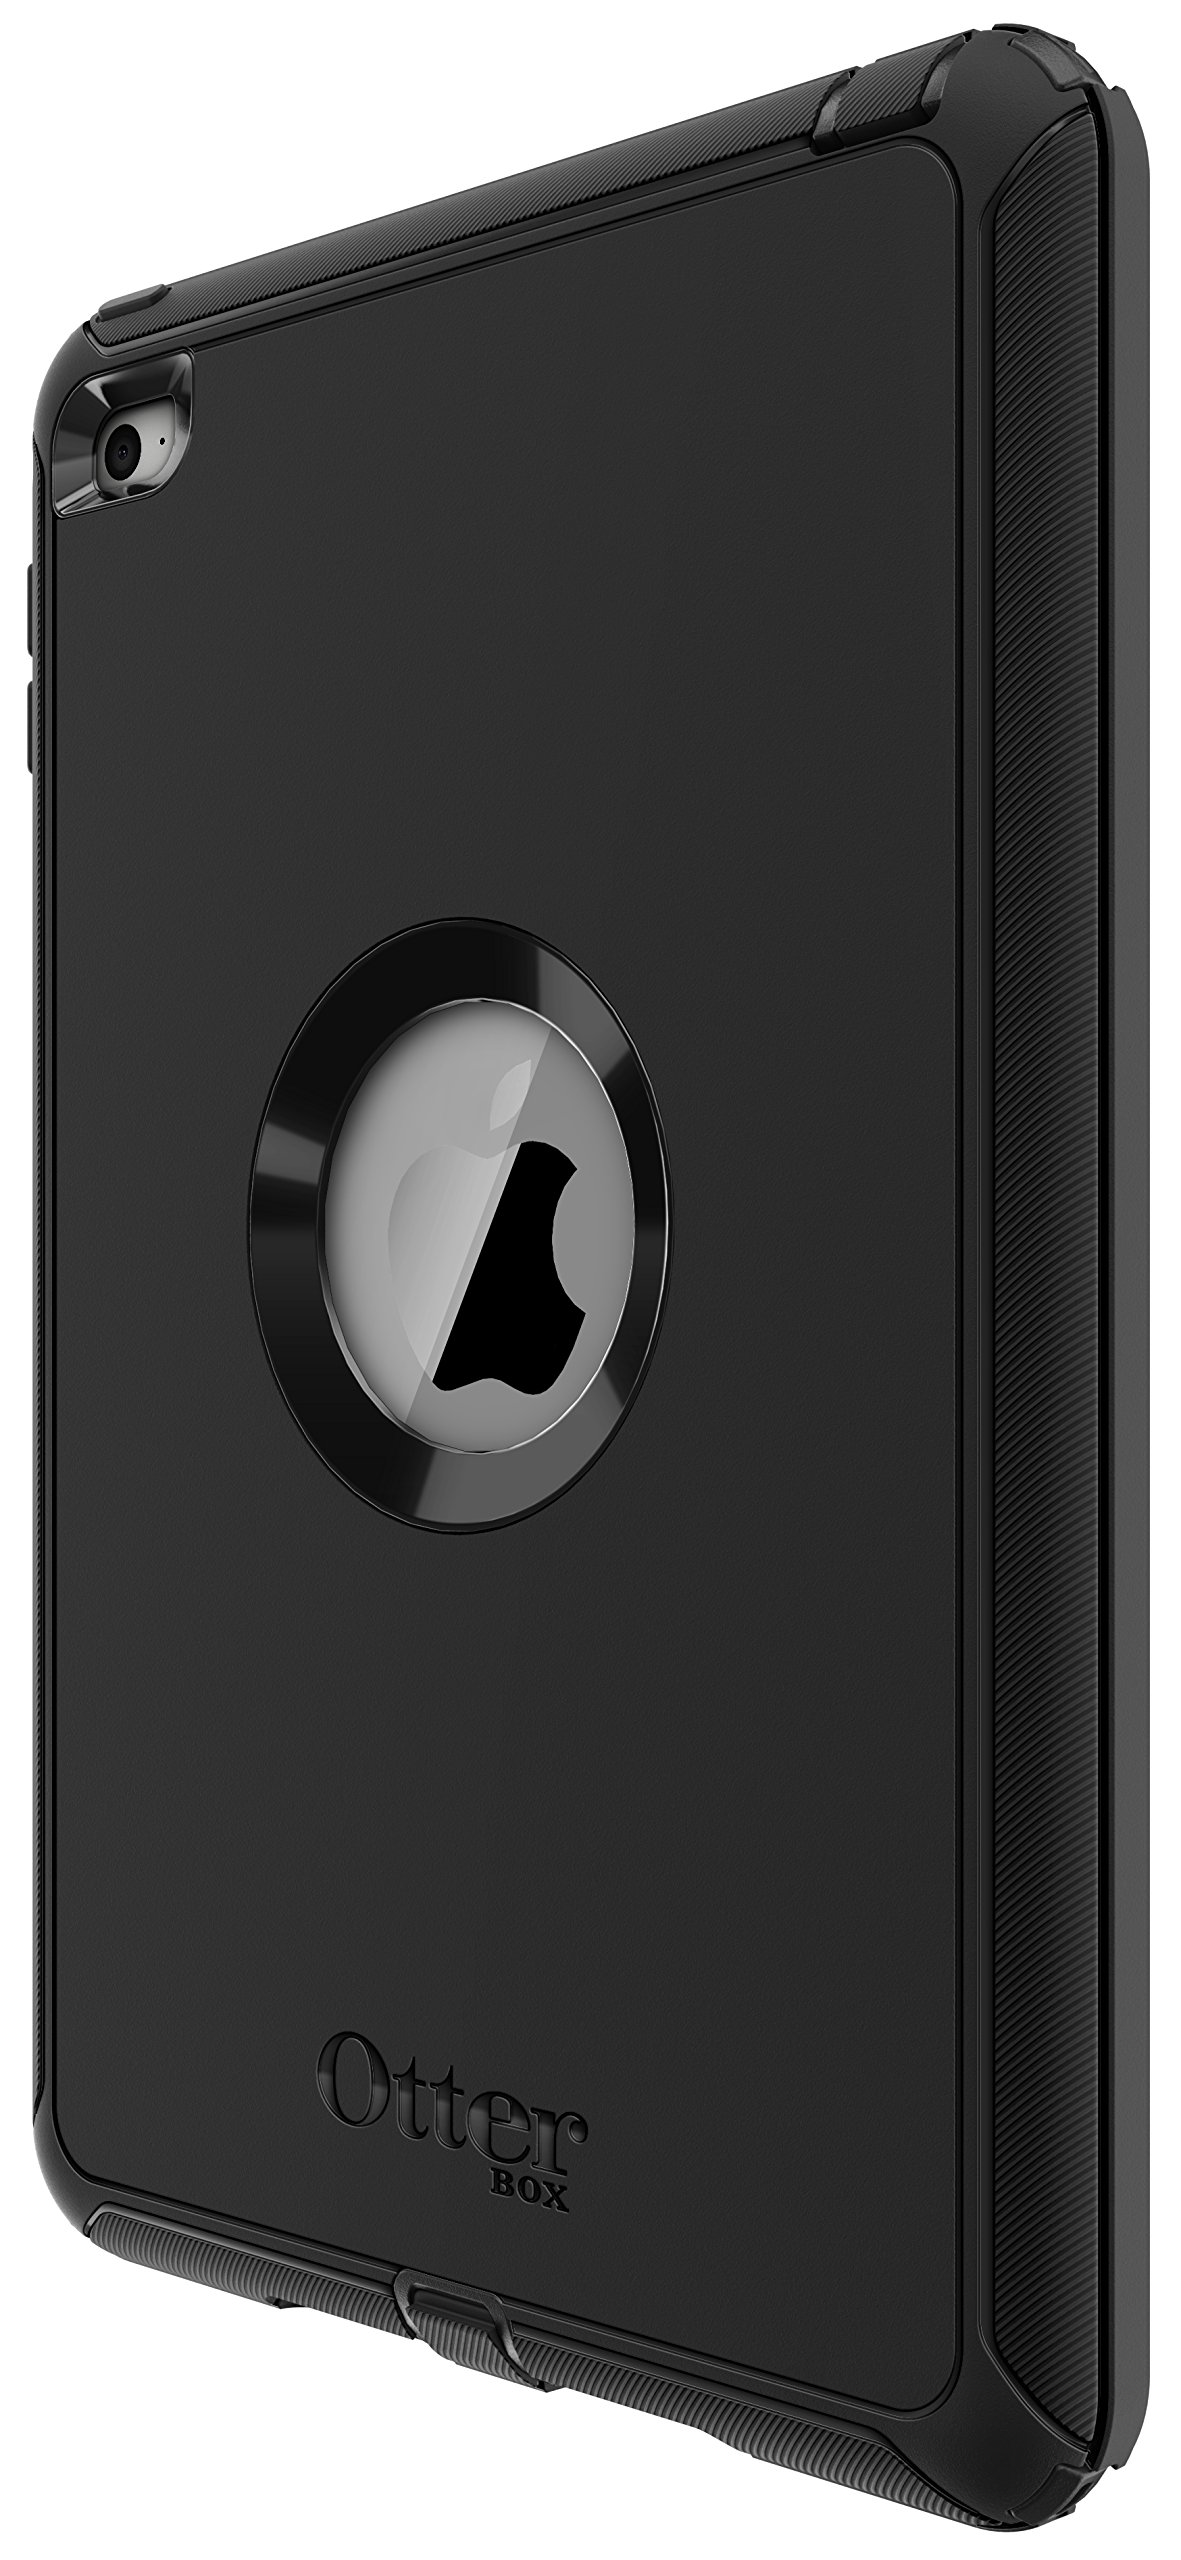 OtterBox DEFENDER SERIES Case for iPad Mini 4 (ONLY) - Retail Packaging - BLACK by OtterBox (Image #3)